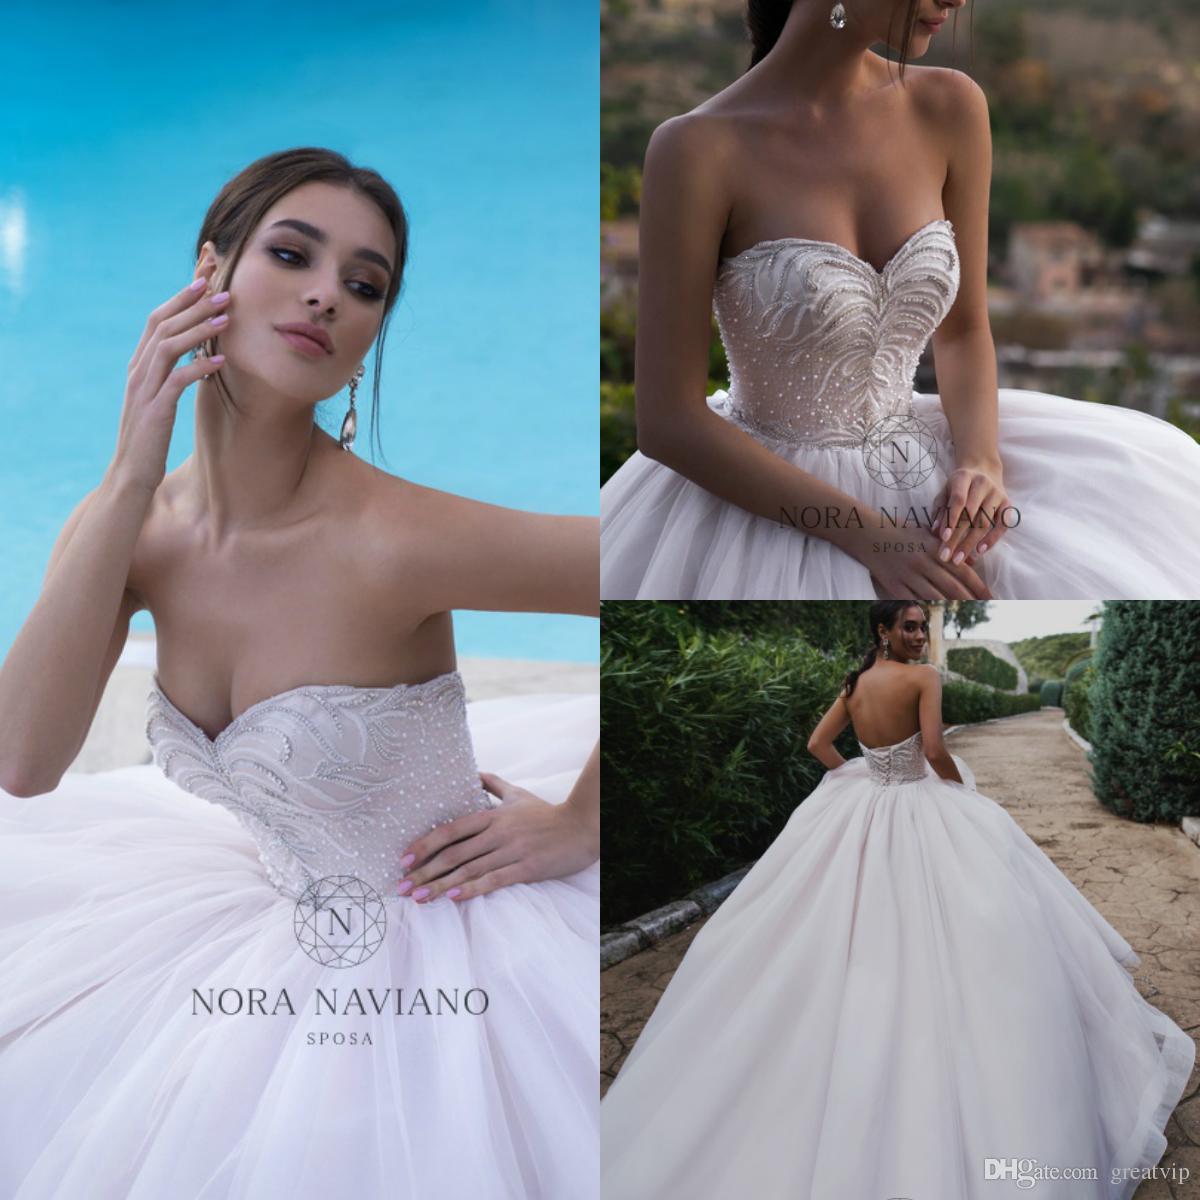 Nora Naviano 2019 Wedding Dresses Sweetheart Backless Bridal Ball Gown Lace Applique Beaded Plus Size Wedding Dress Robe De Mariée